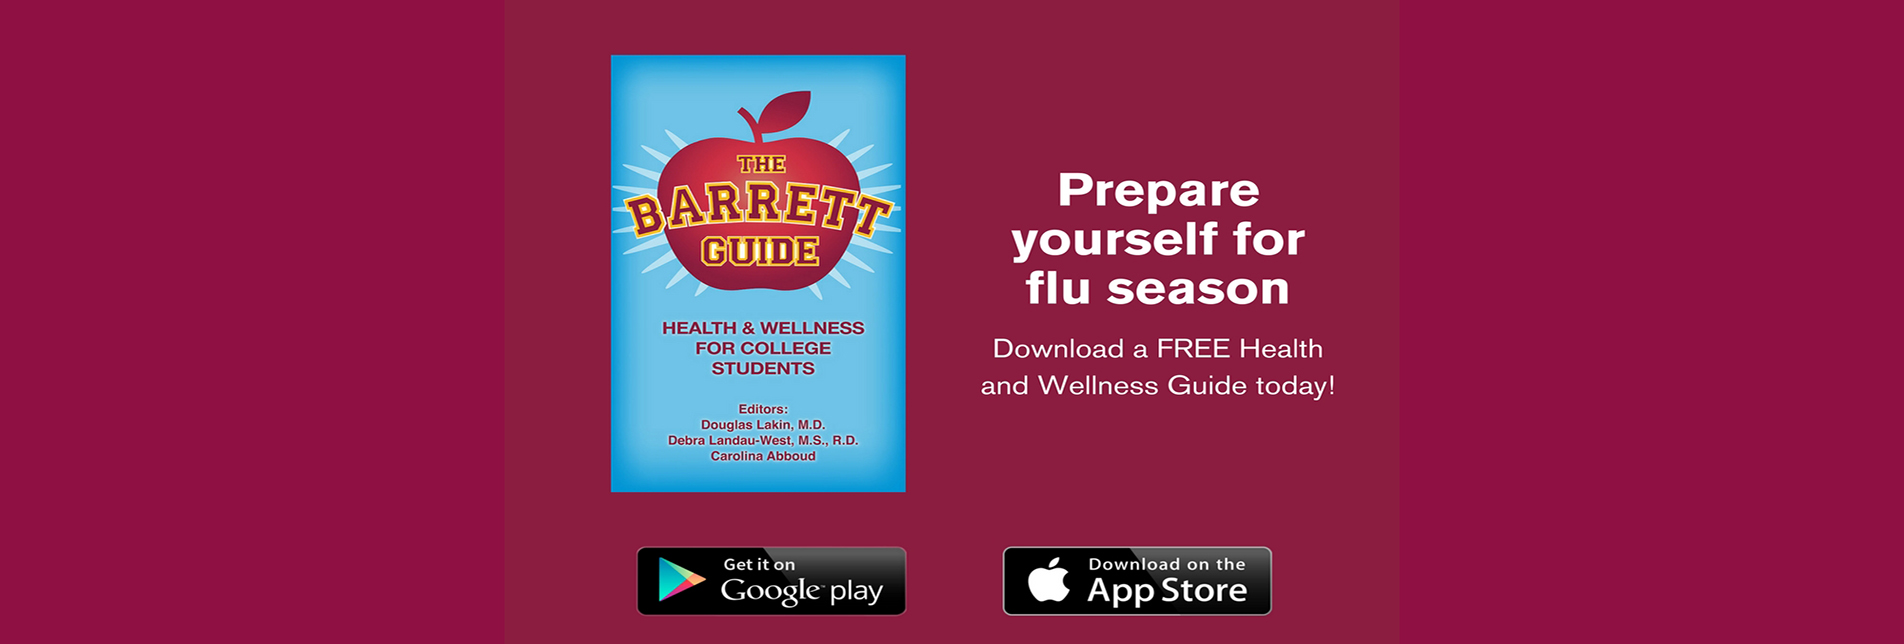 NEW! THE BARRETT GUIDE: Health & Wellness For College Students